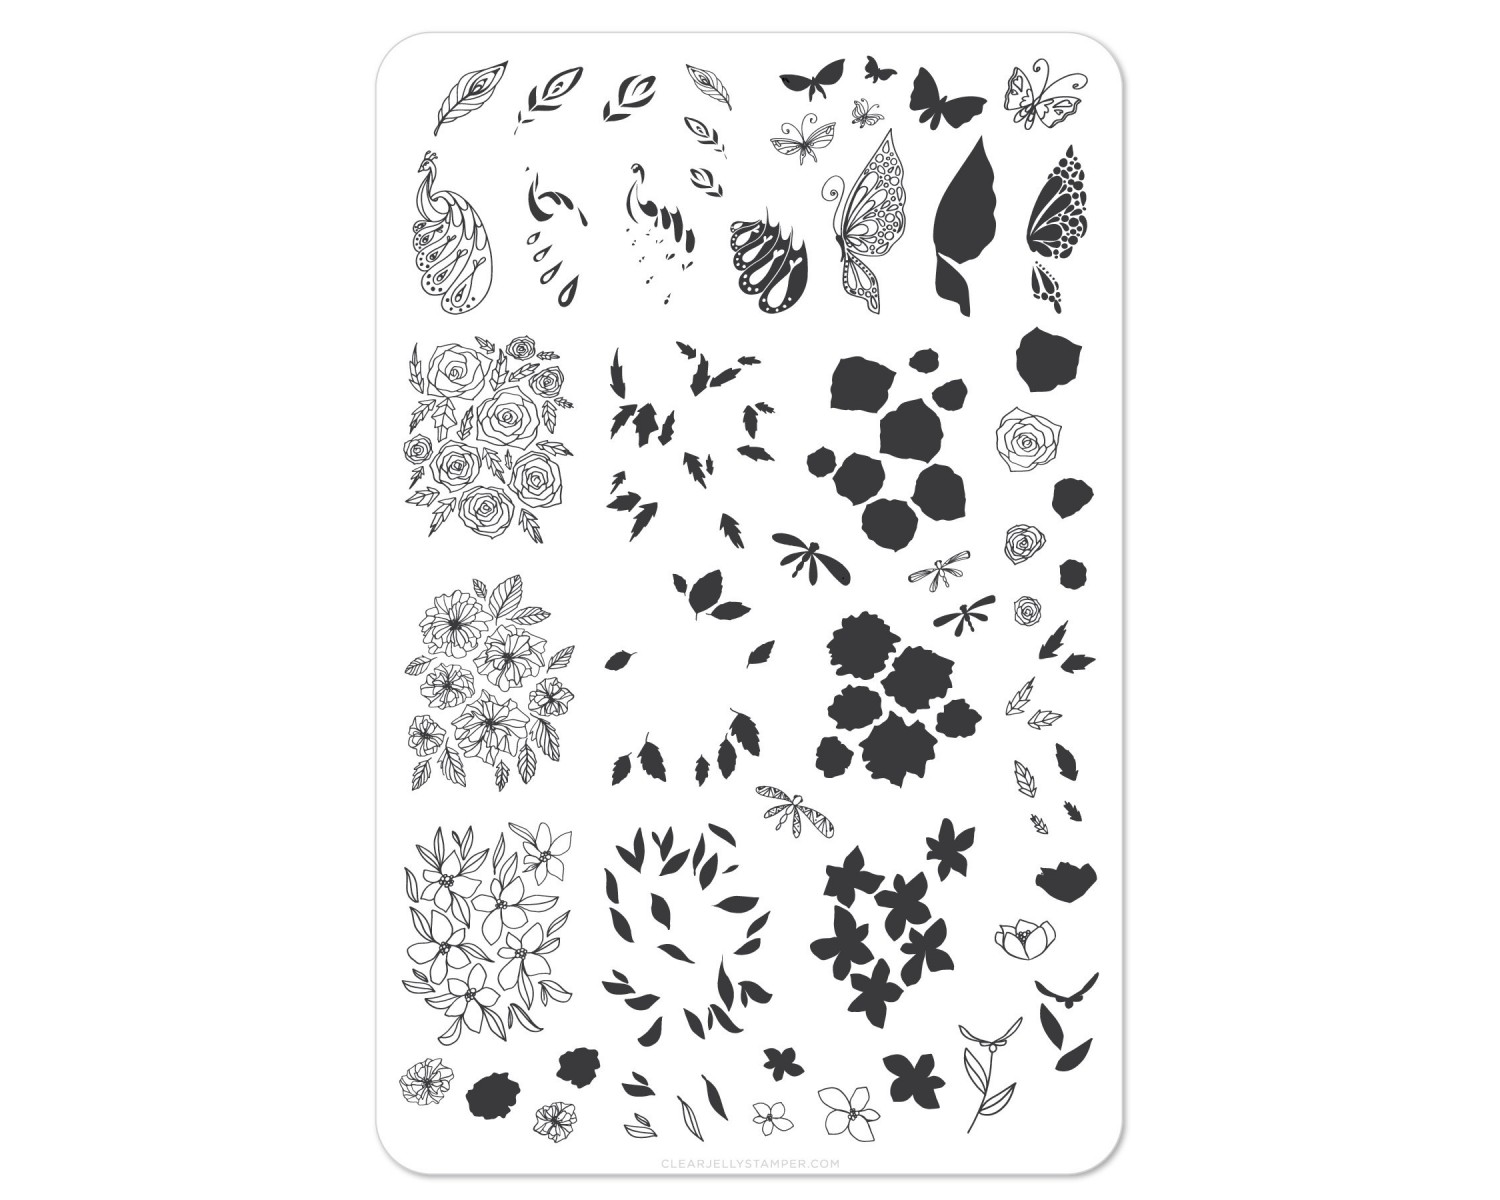 Clear Jelly Stamper - Peacocks Garden